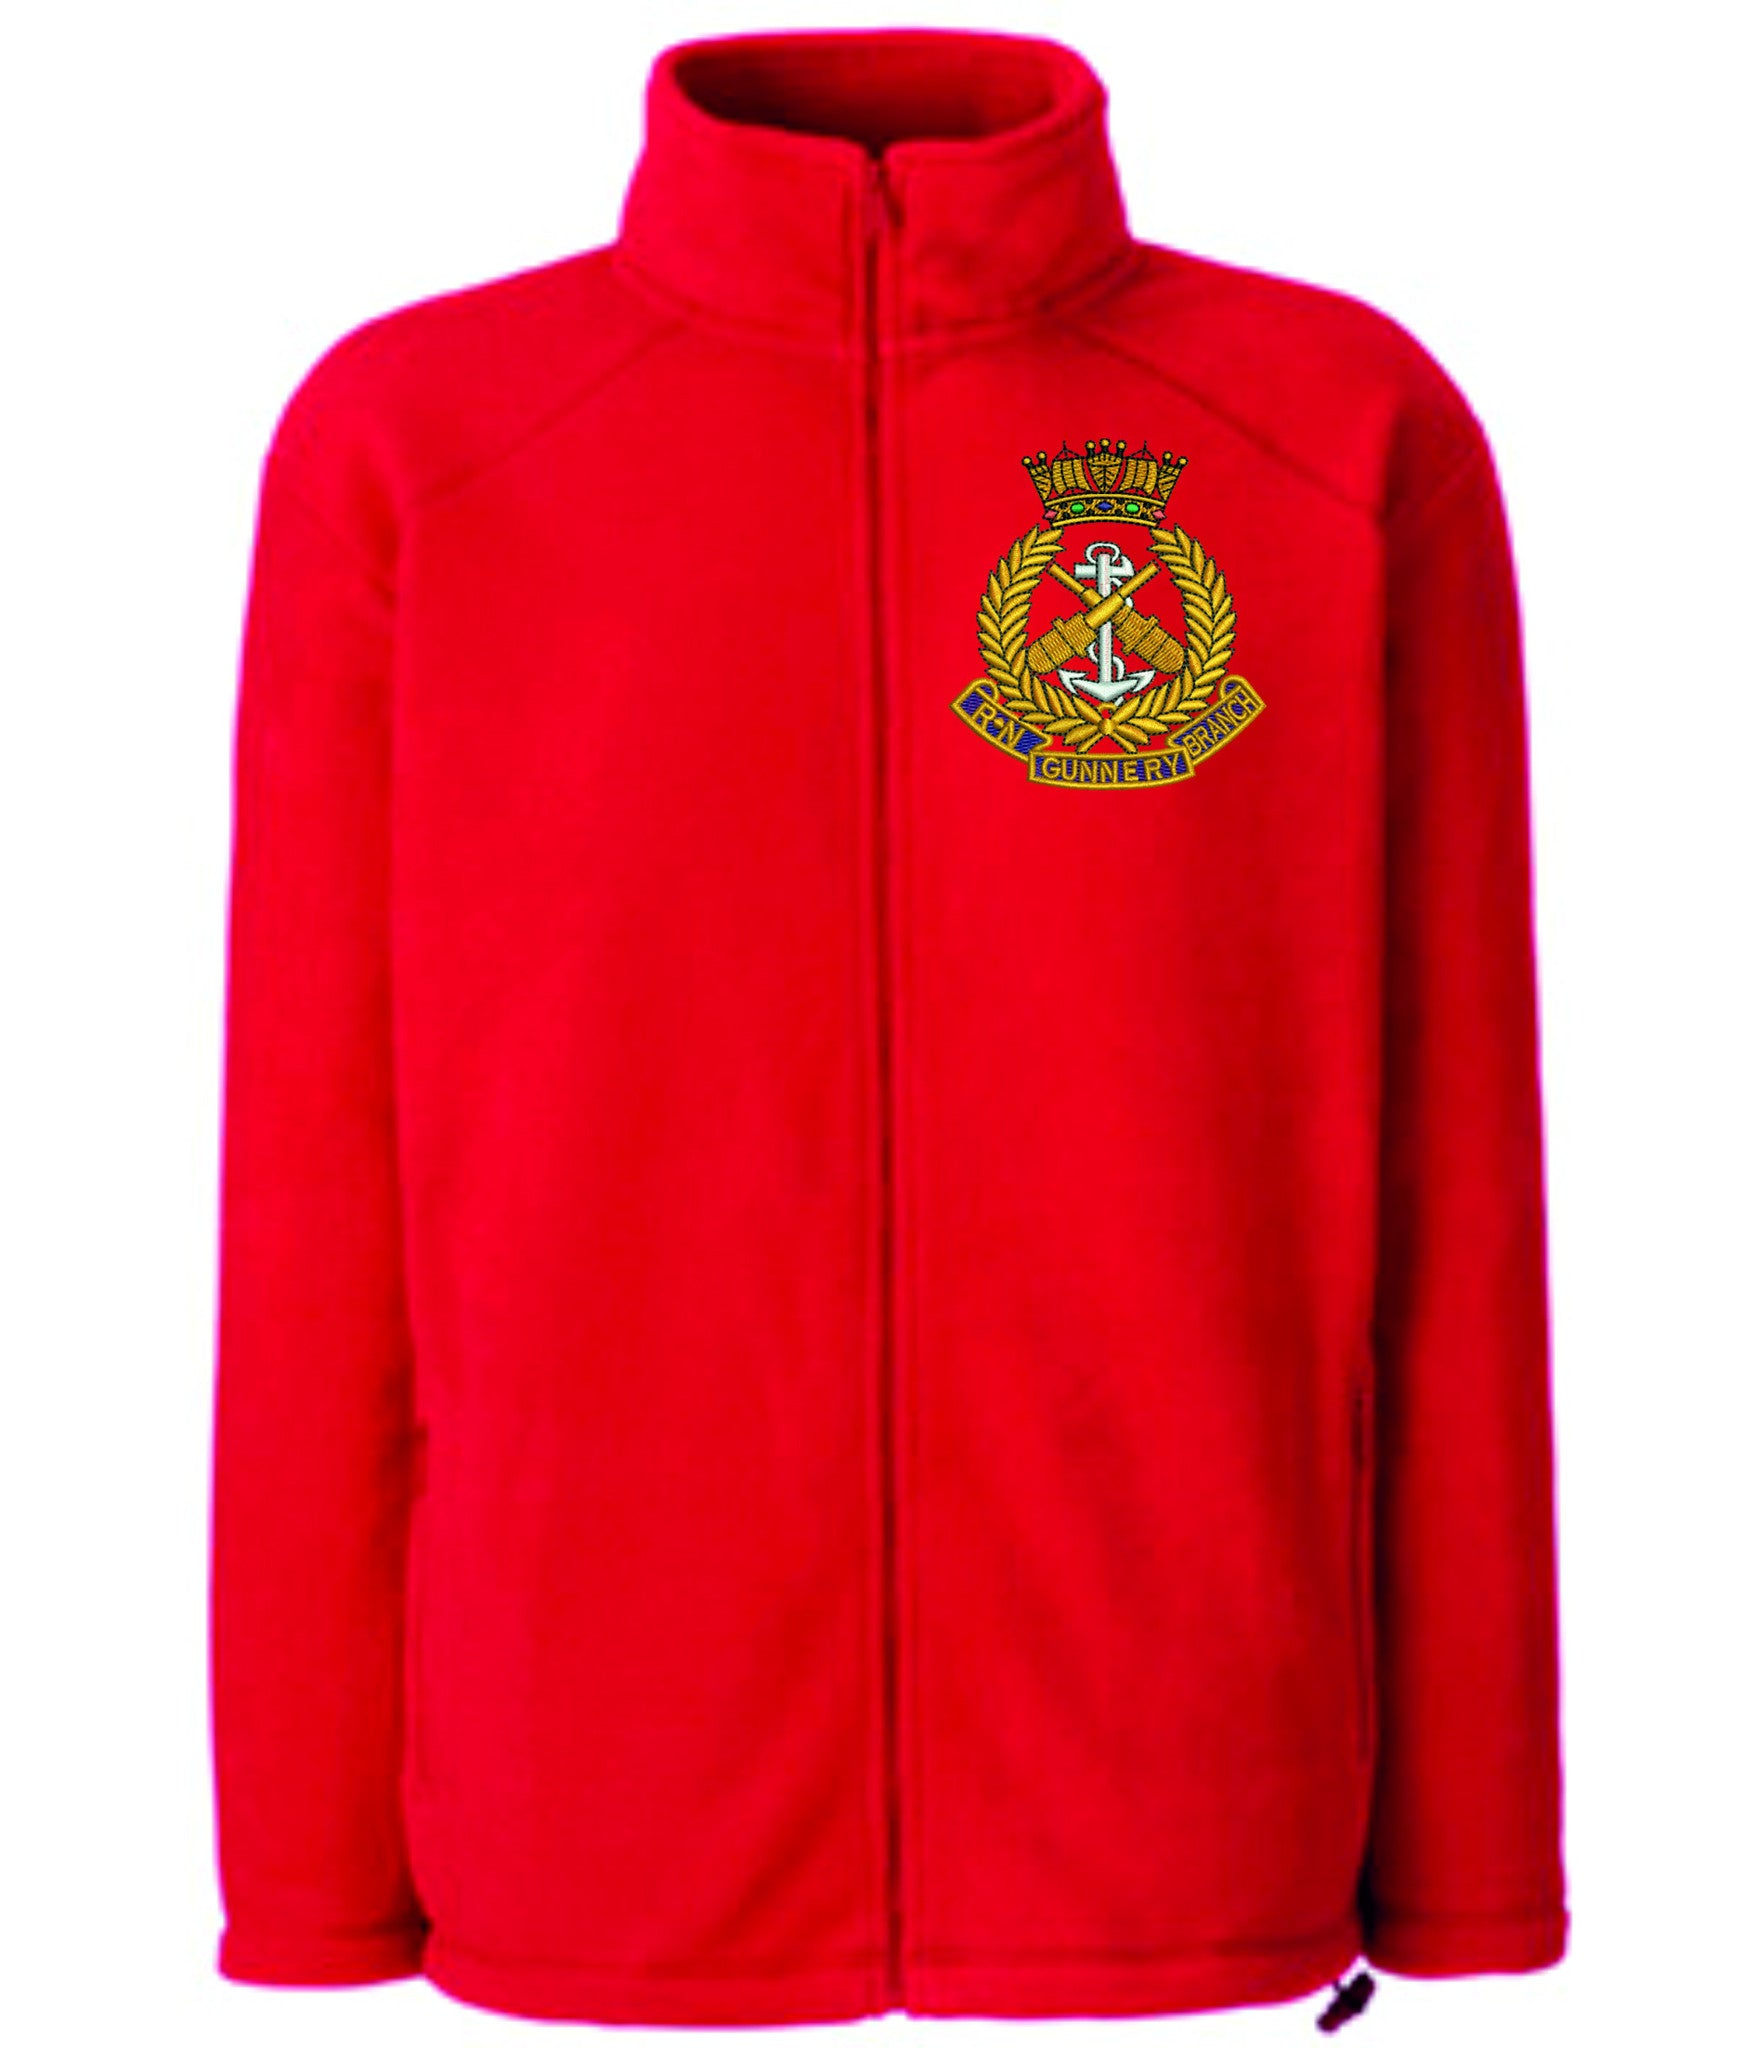 Royal Navy Gunnery Branch fleece